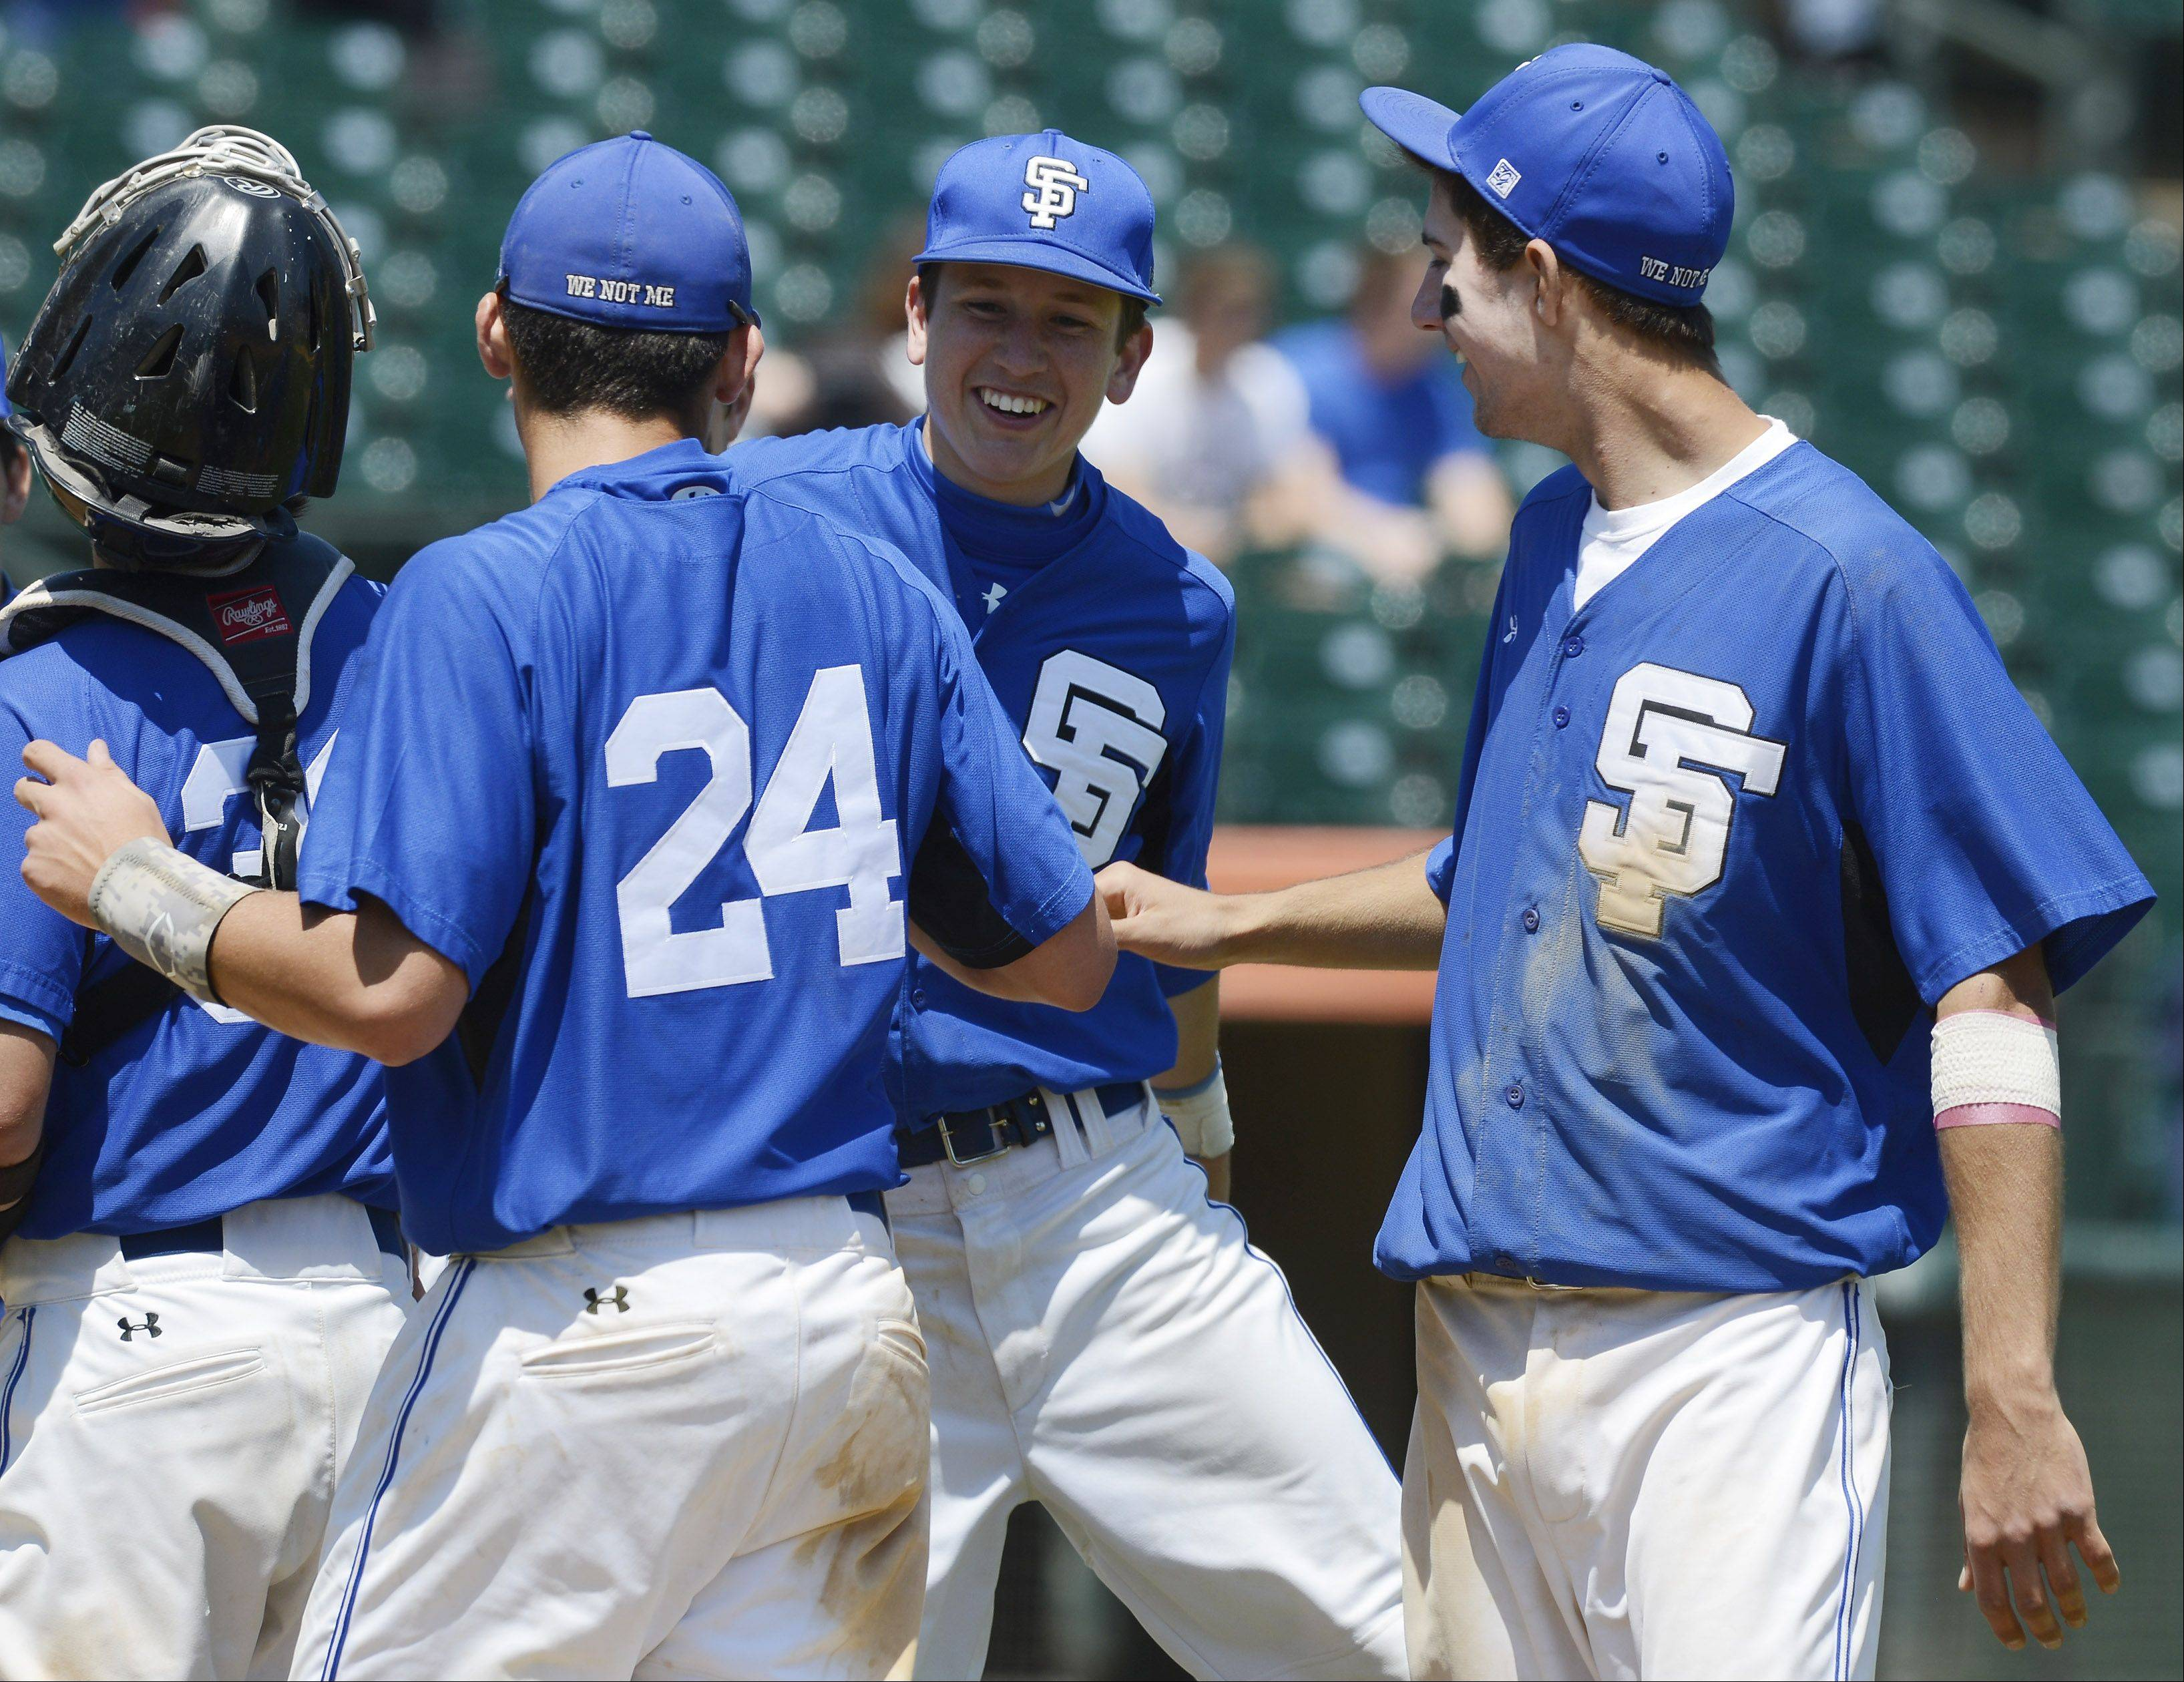 Left to right, St. Francis players Jason Sullivan, Jack Ciombor and Tim Zettinger celebrate their team's victory over Grayslake Central during the Class 3A state baseball semifinal at Silver Cross Field in Joliet Friday.